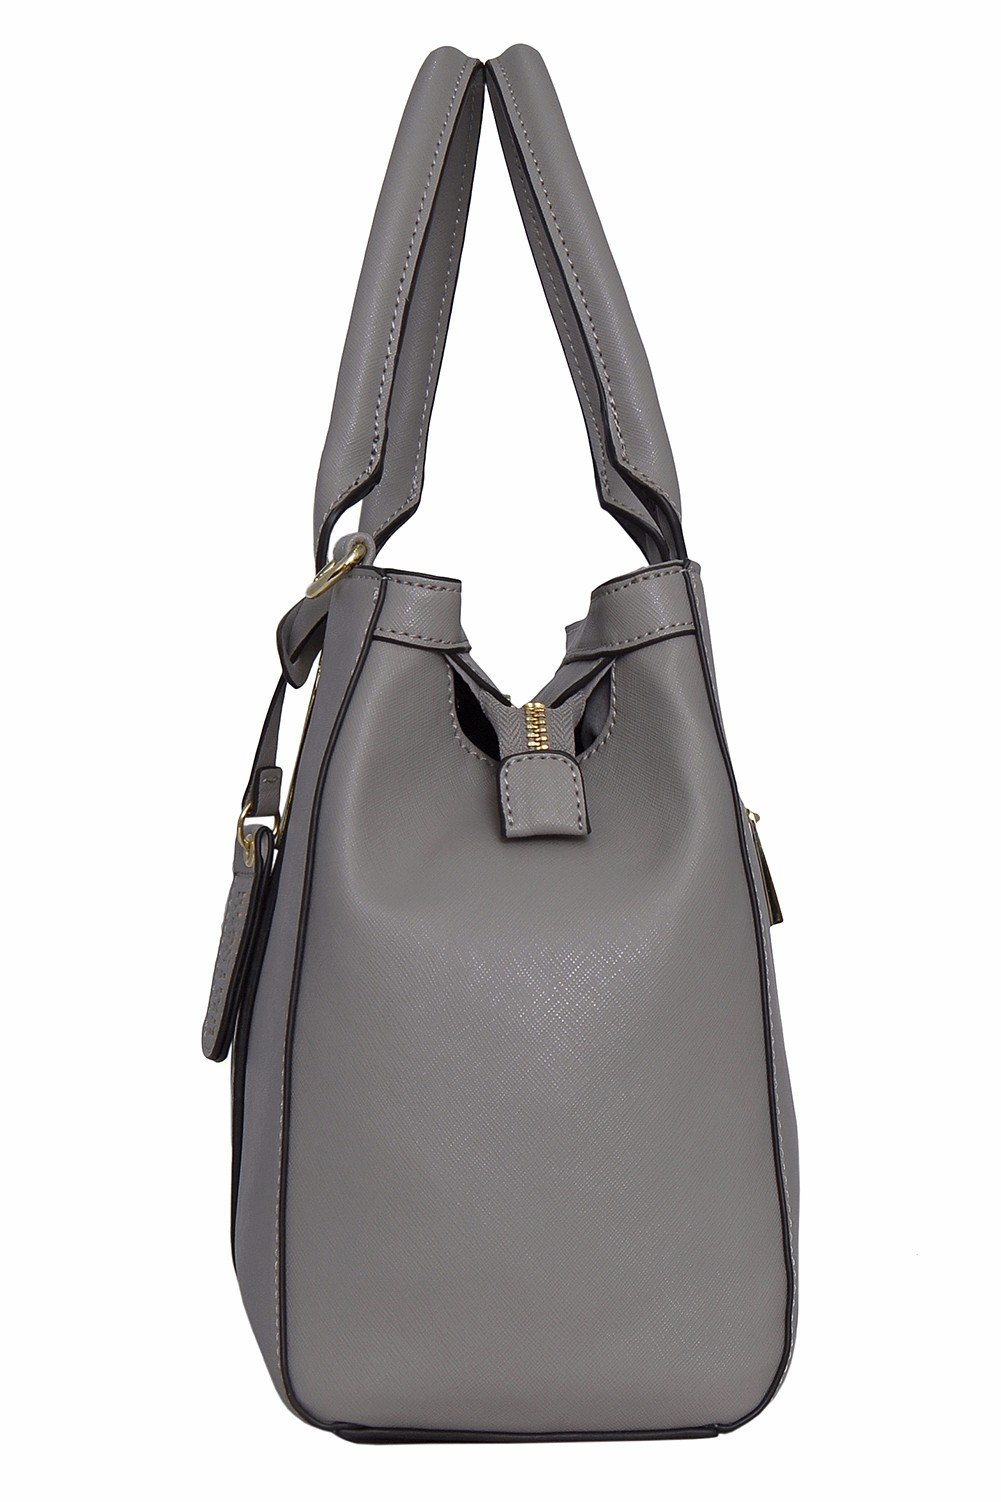 Kenneth Cole REACTION KN1860 Triple Entry Harriet Satchel Handbag (STONY BROOK) by Kenneth Cole REACTION (Image #2)